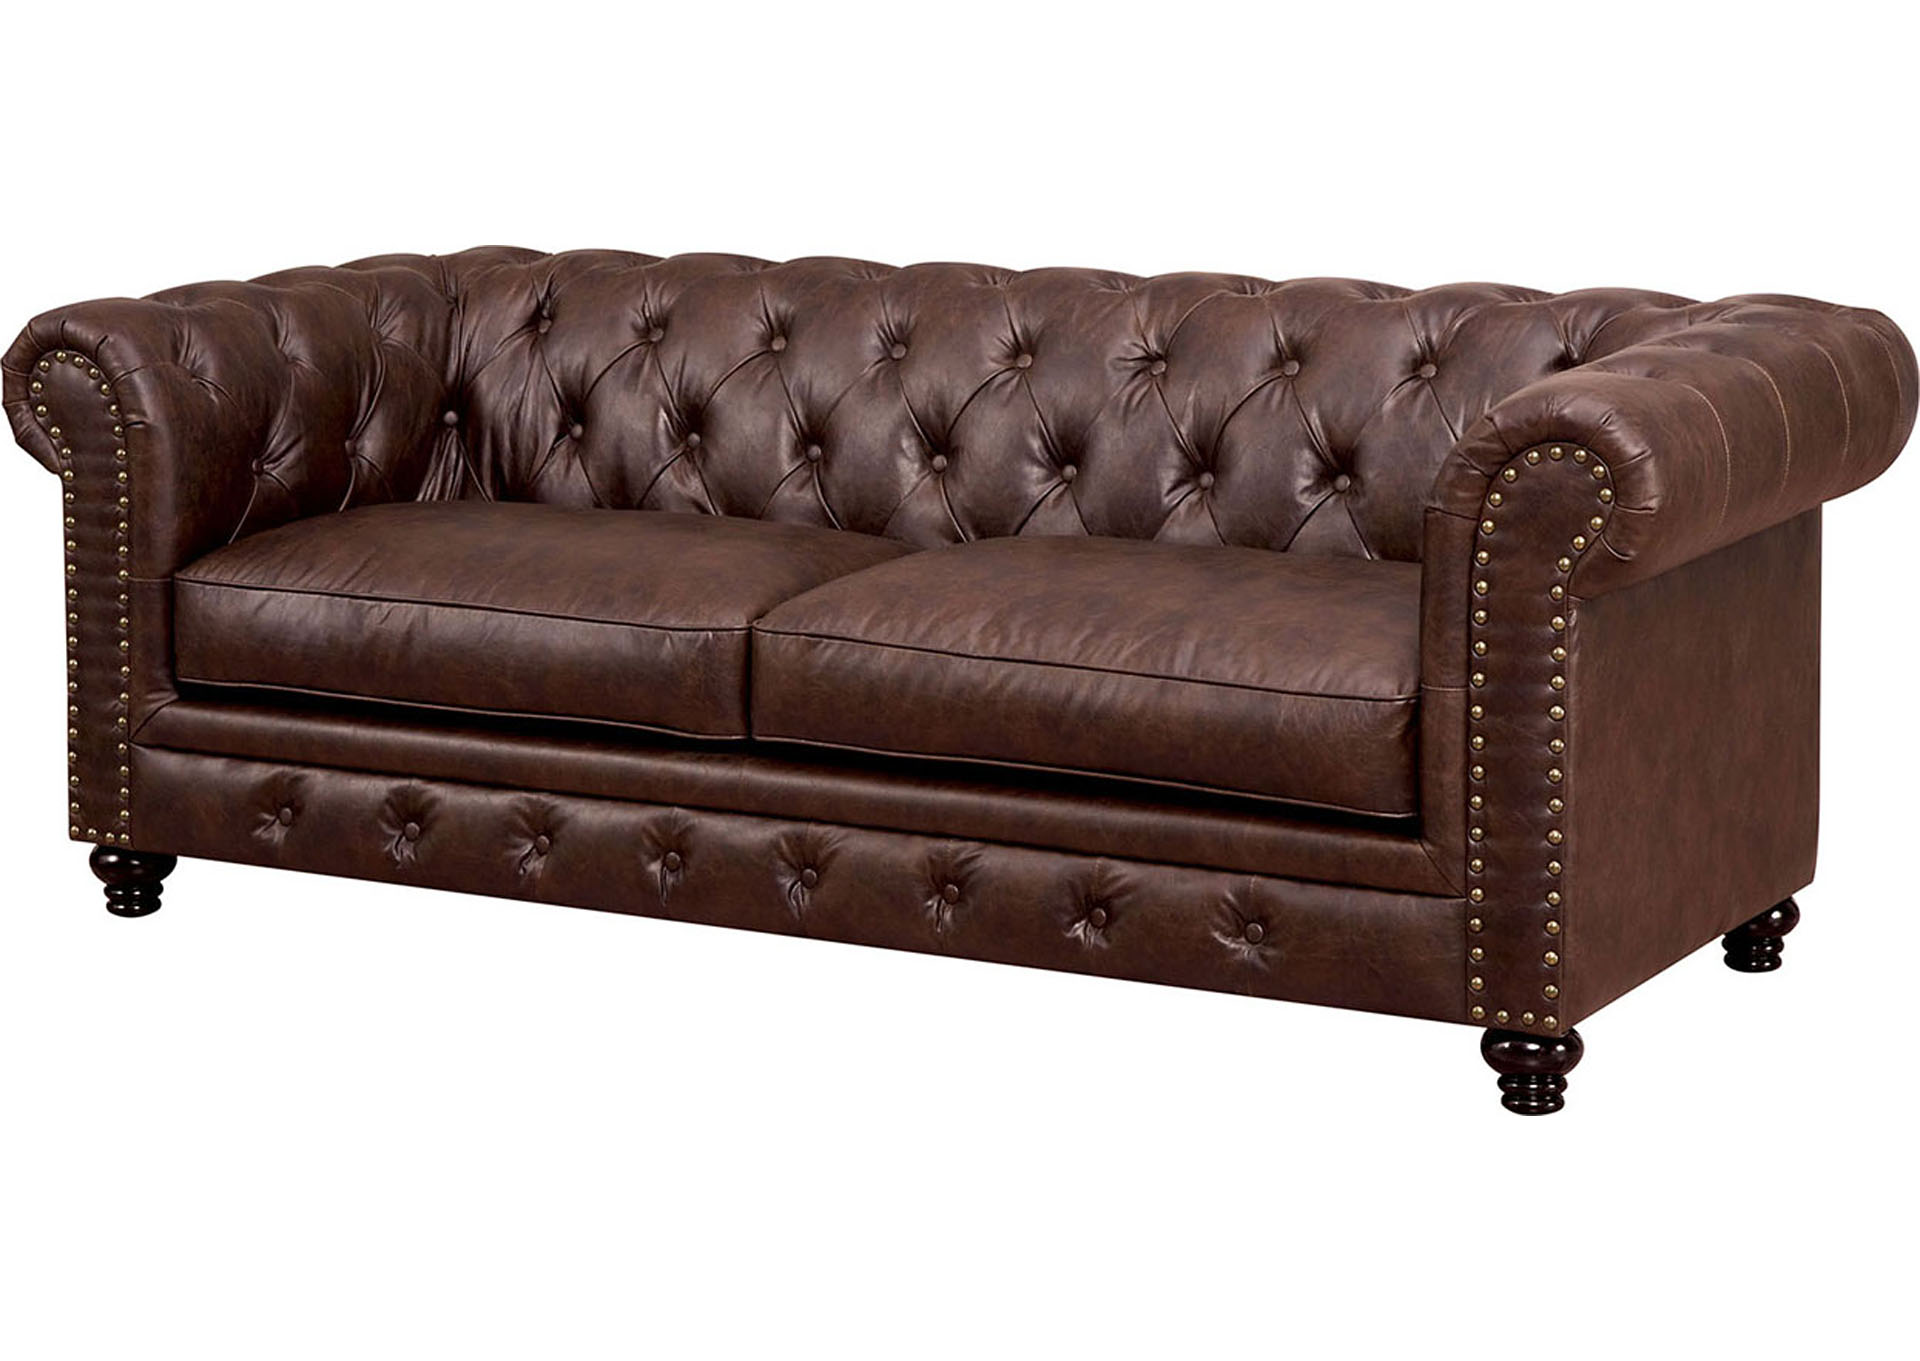 Stanford Brown Leatherette Sofa,Furniture of America